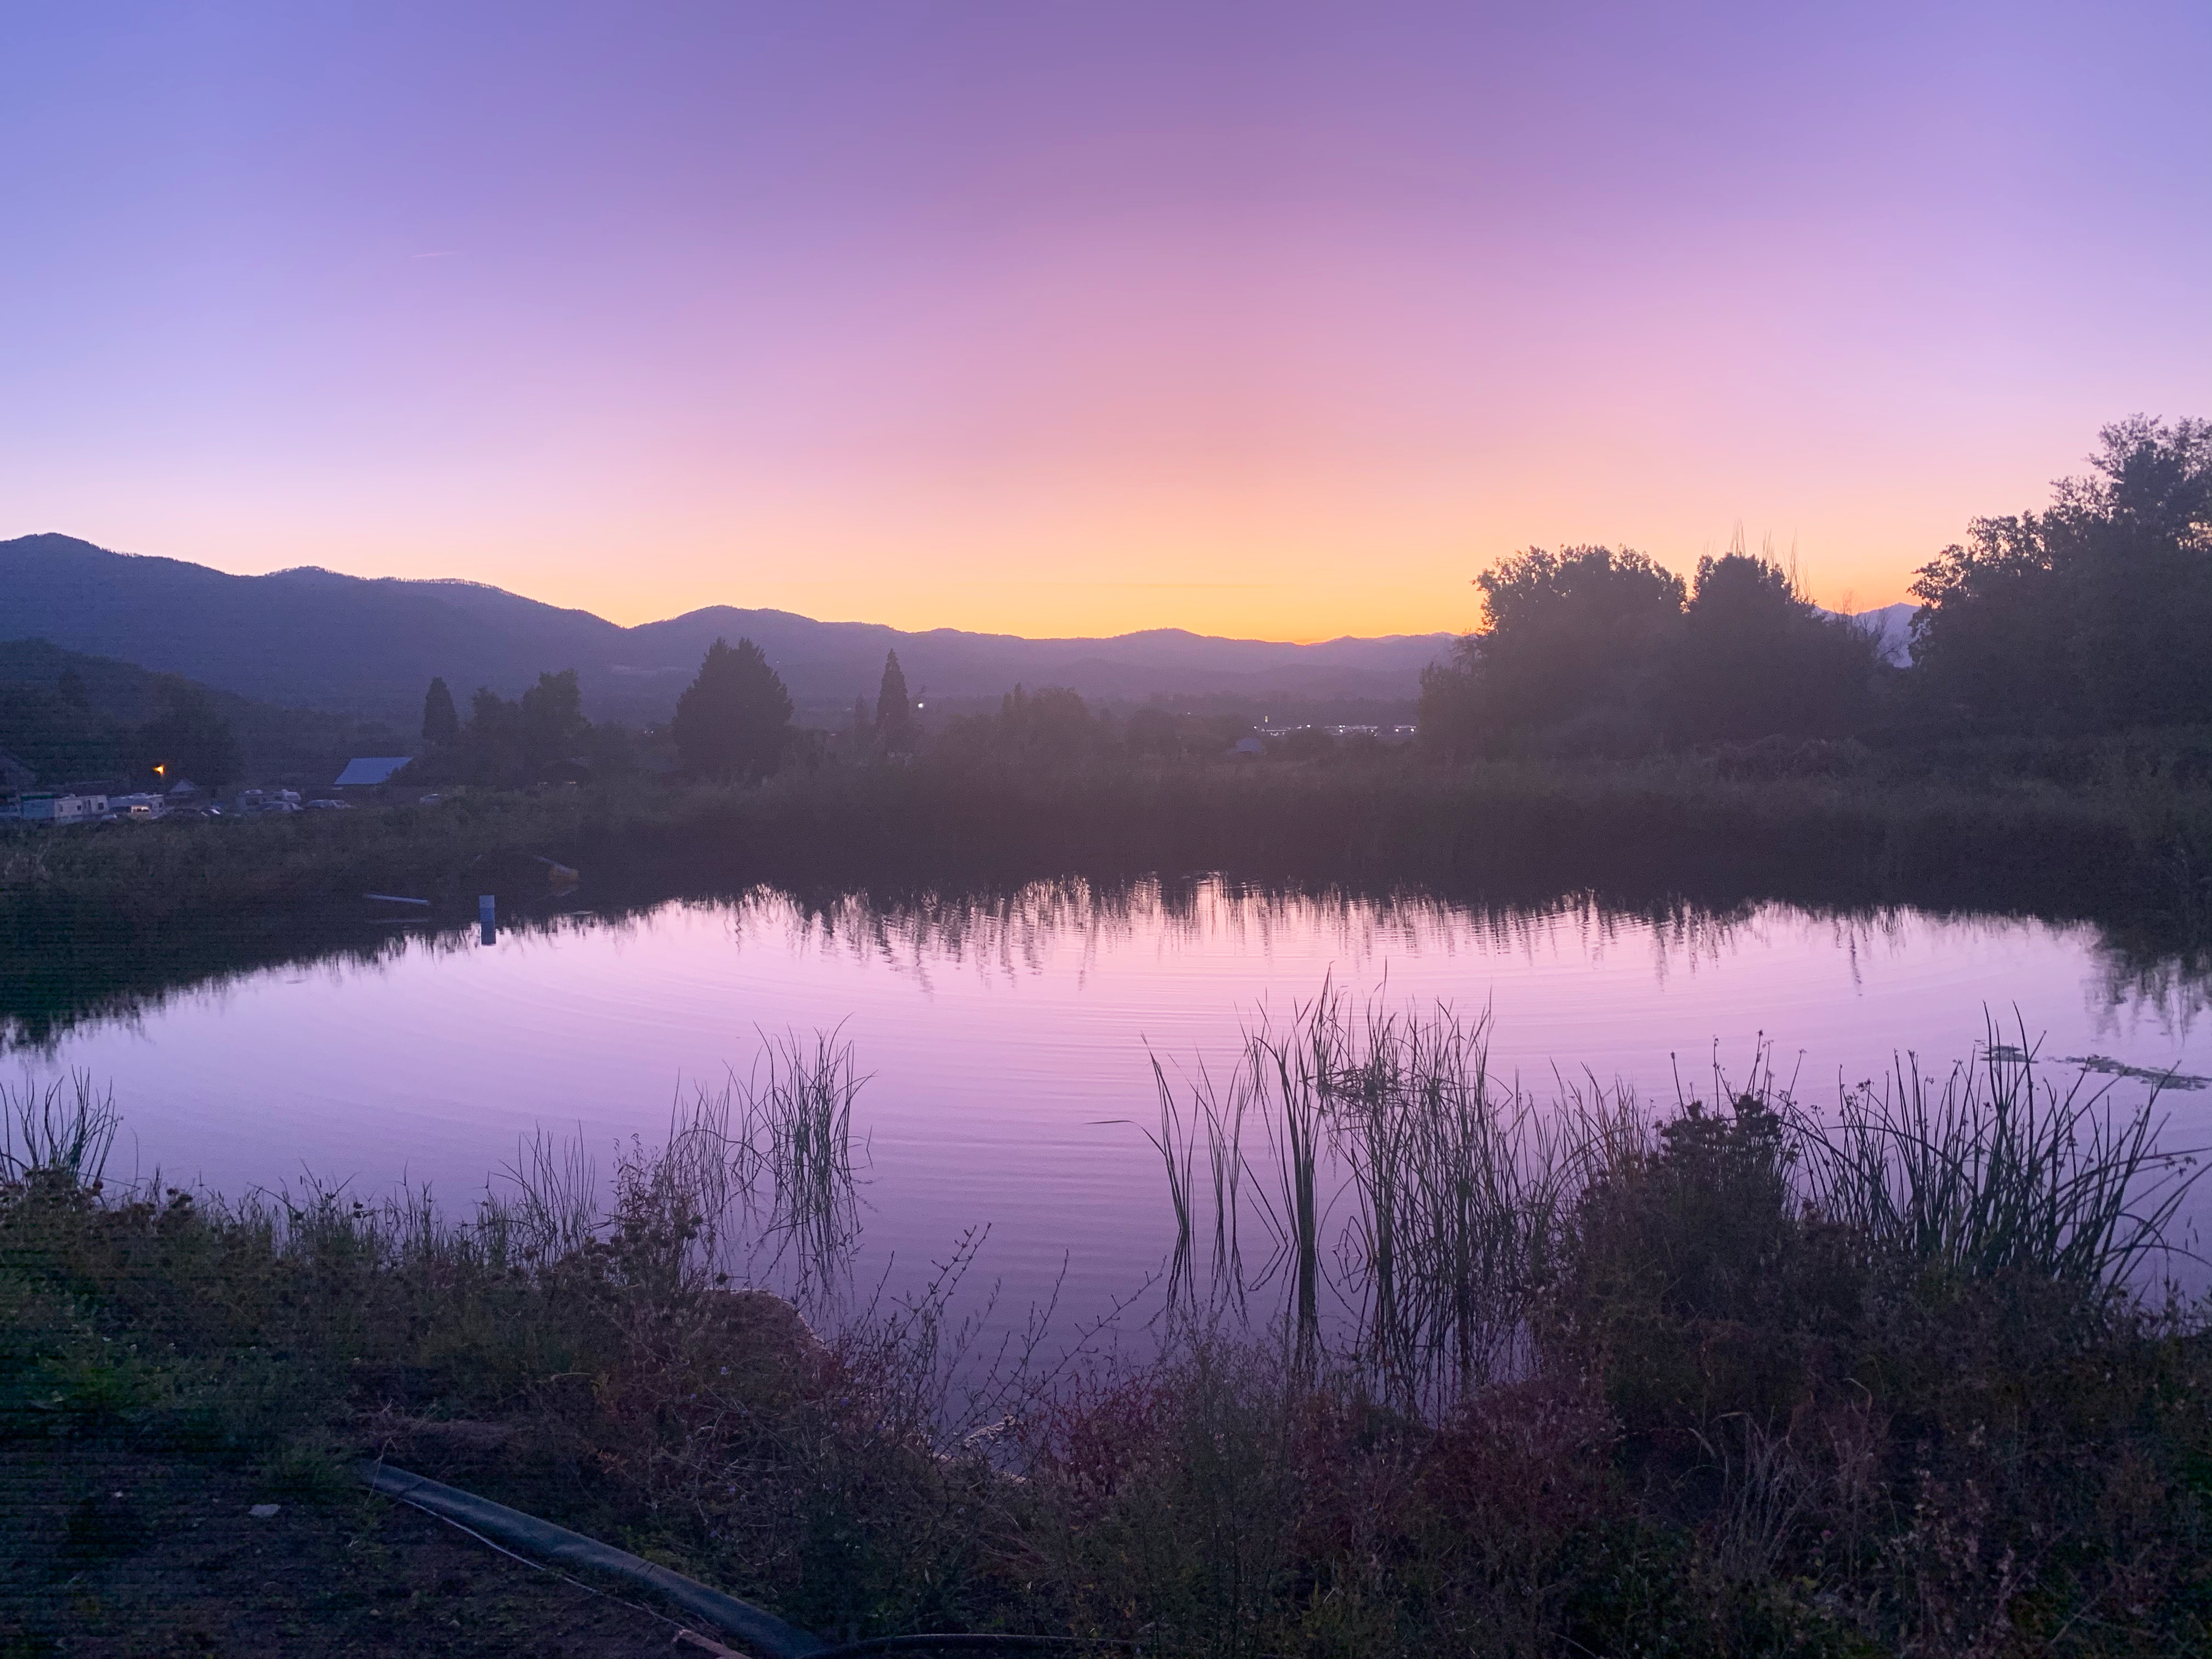 purple-sunset-over-pond.png